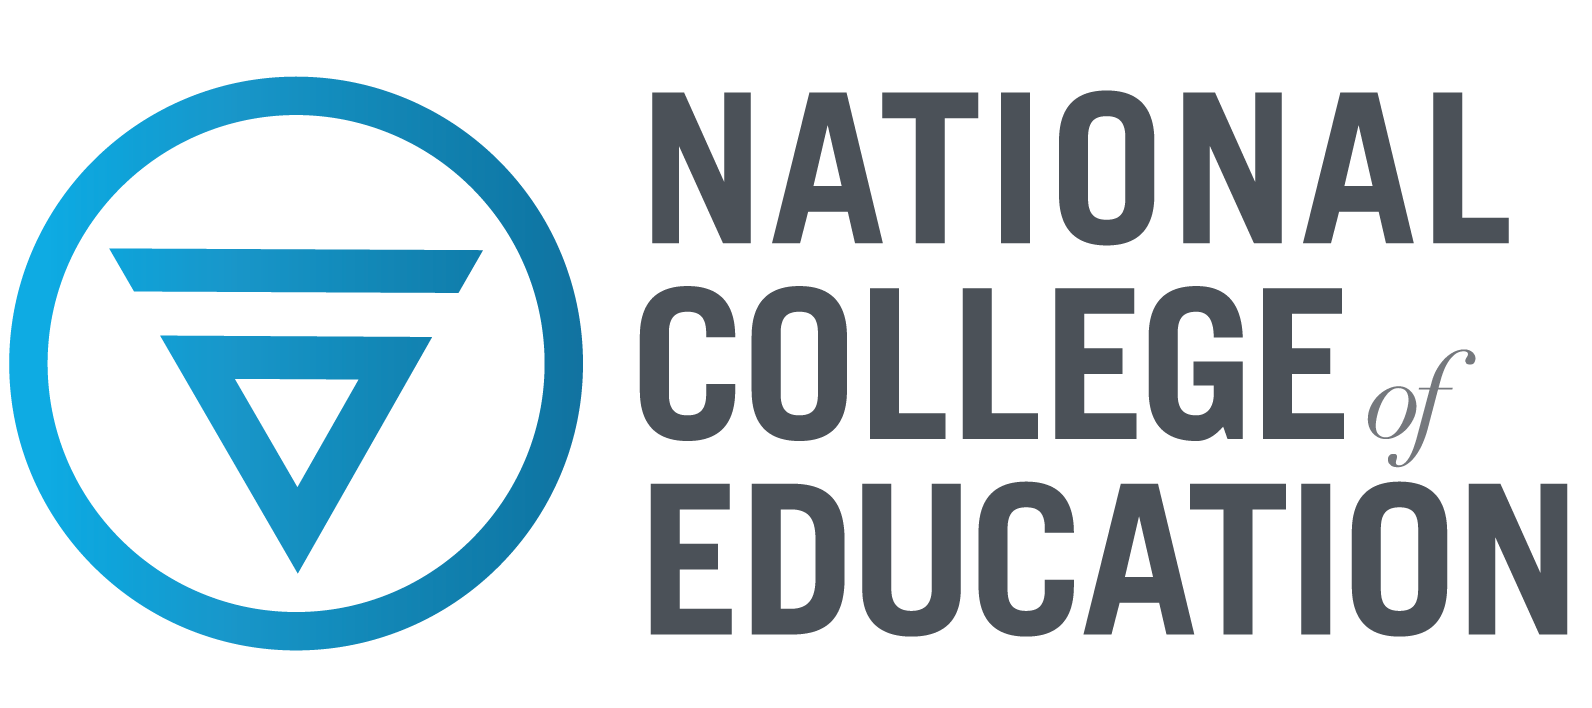 National College of Education